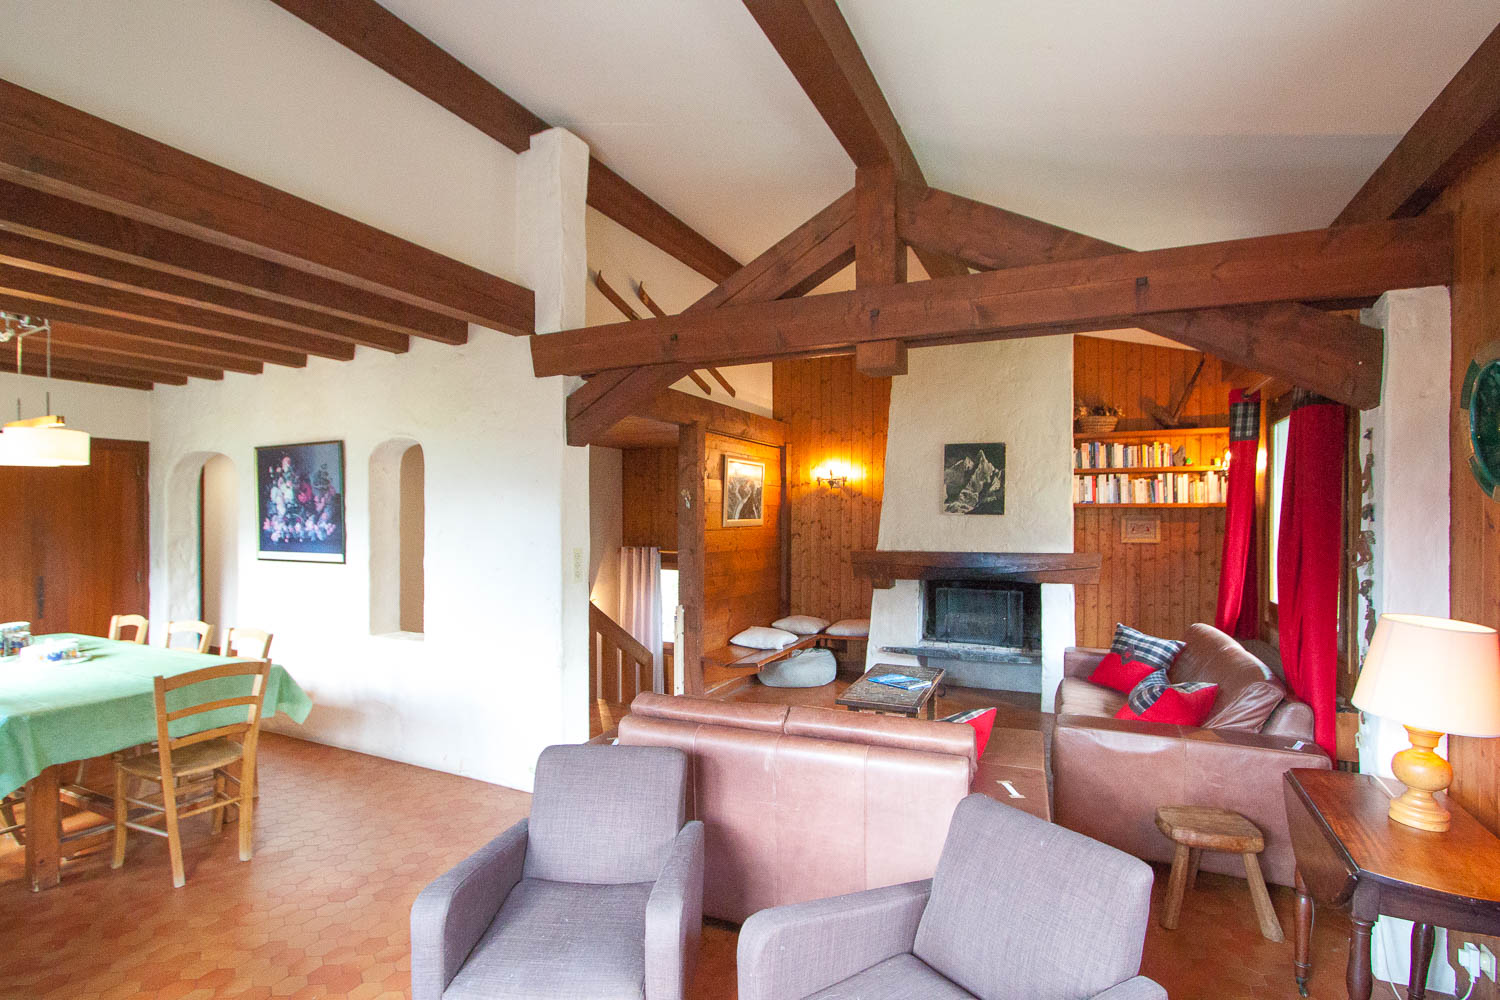 Living area of chalet for sale in Chamonix Les Pècles